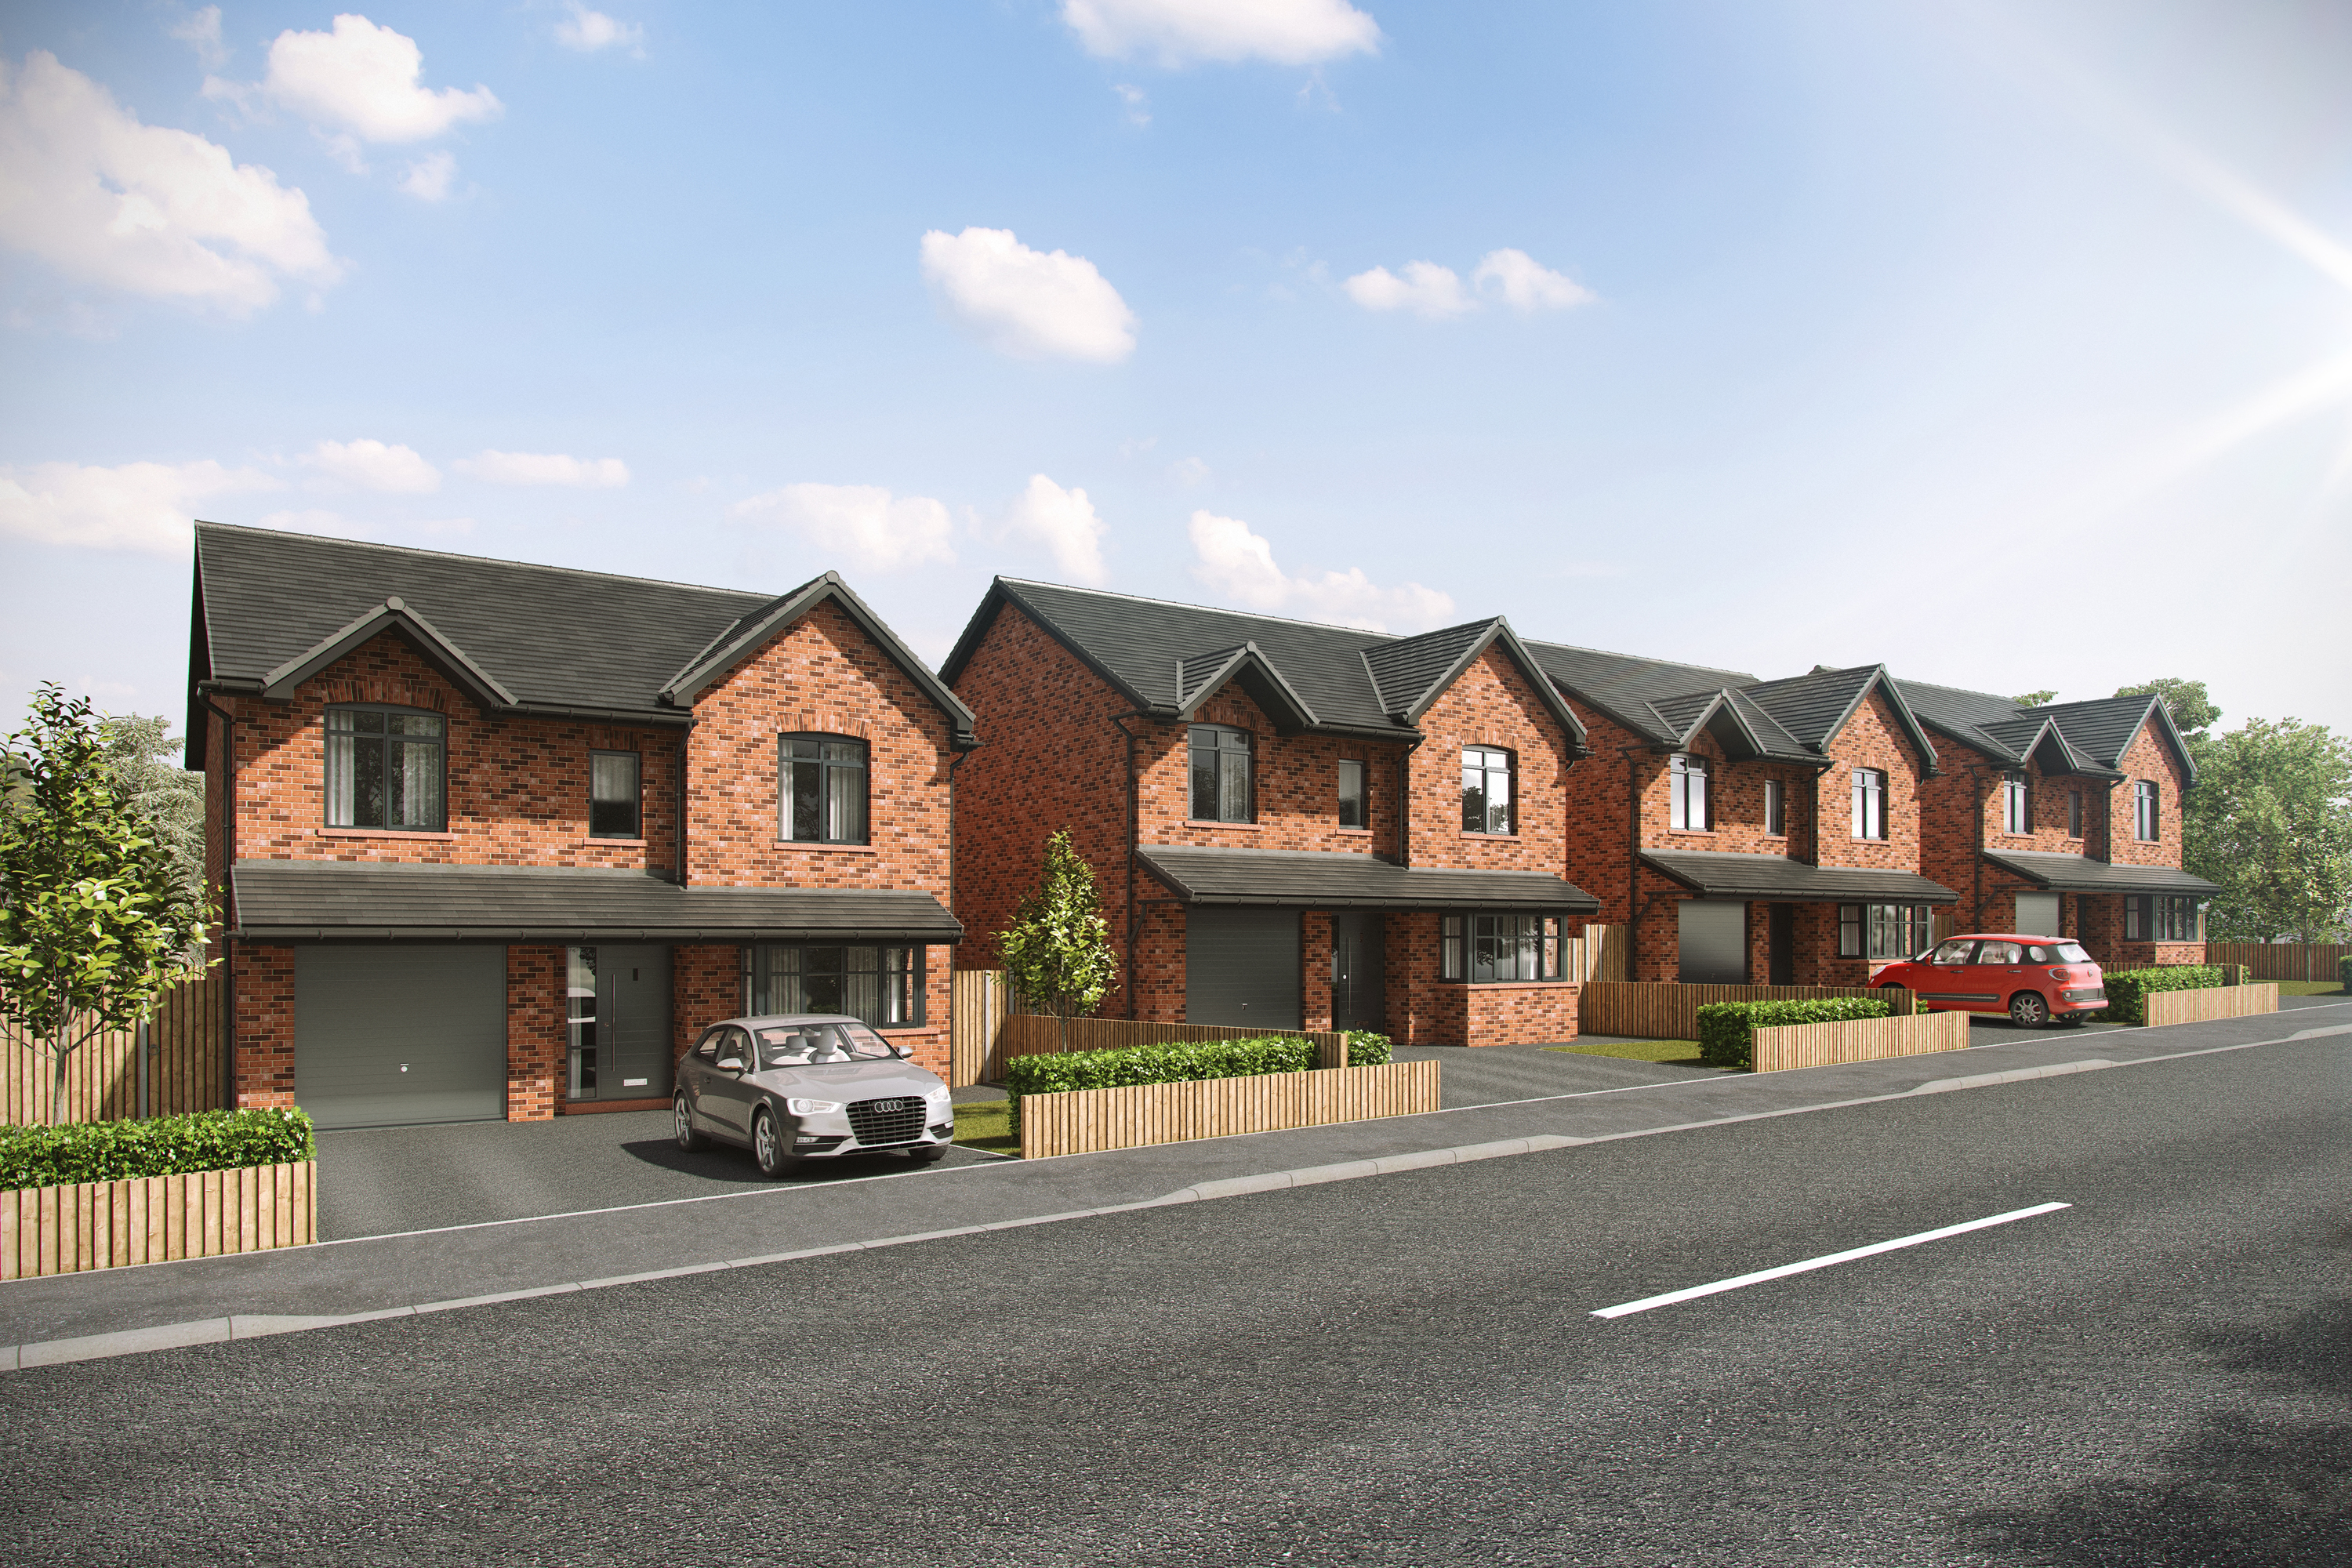 New Homes, Bleak Hill, Windle, Lynton gardens, Henderson Homes